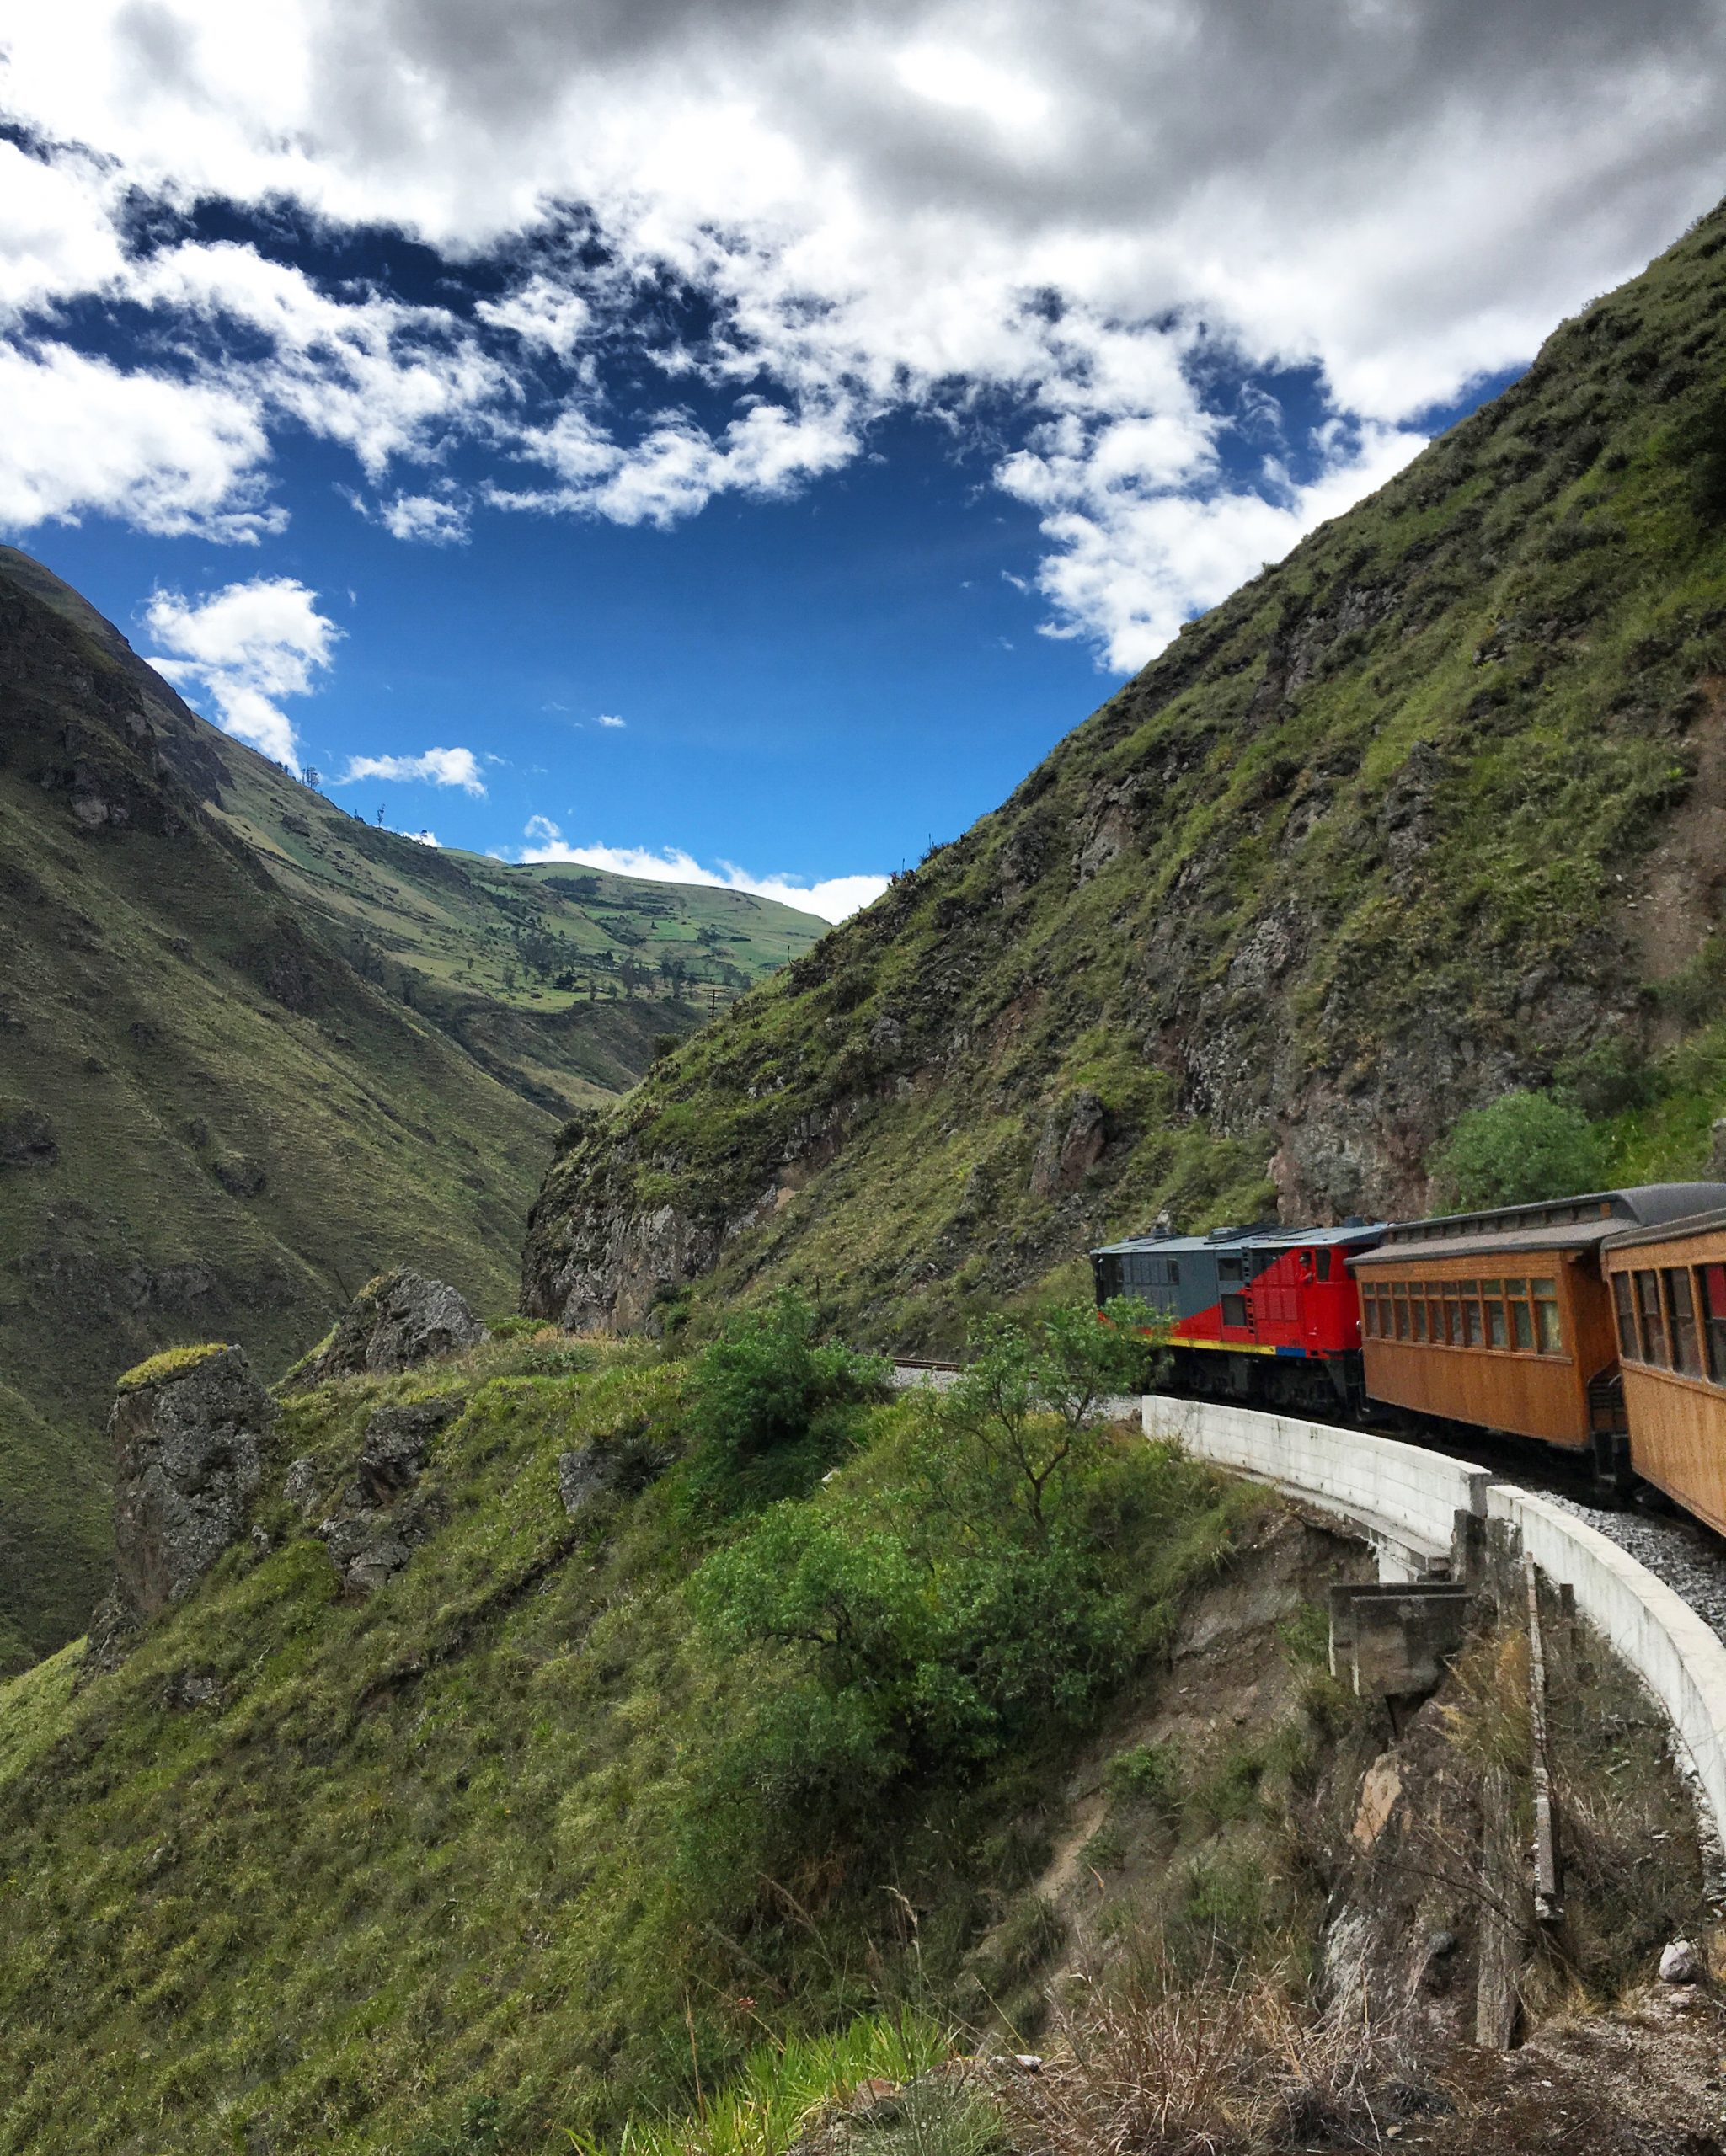 Video: Nariz de Diablo Train Ride in Ecuador